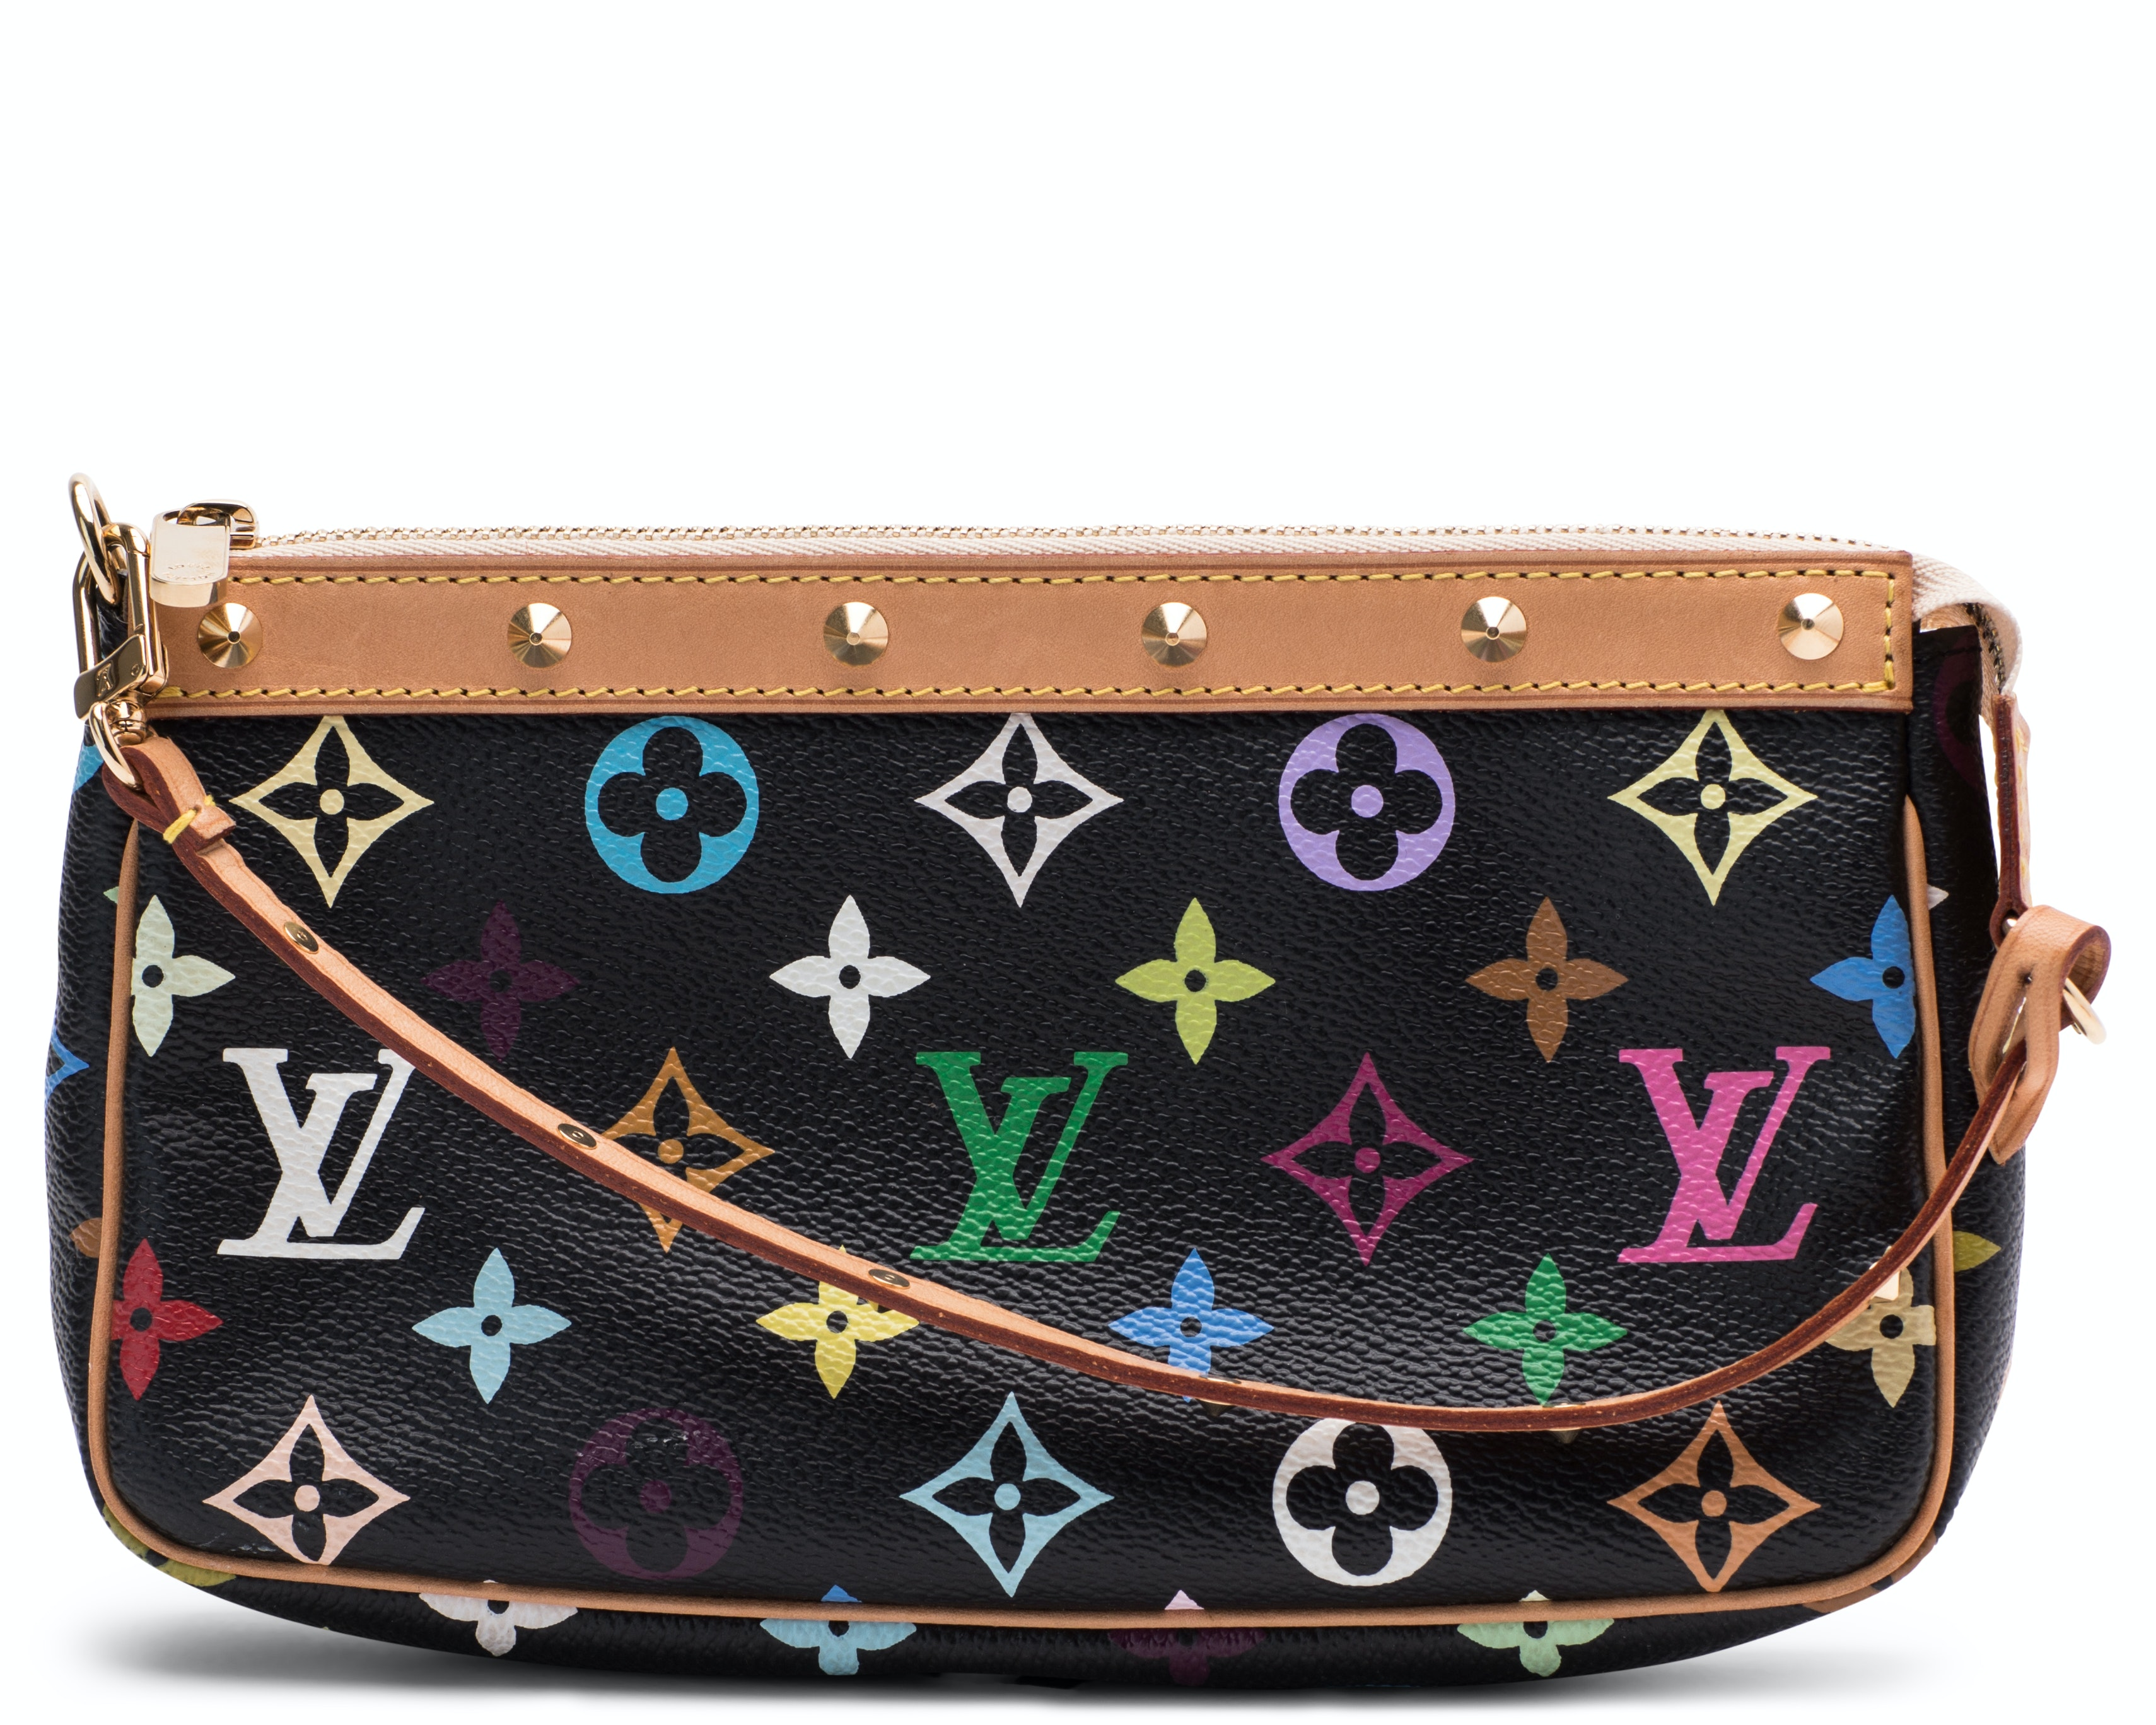 Louis Vuitton Pochette Accessoires Monogram Multicolore Black